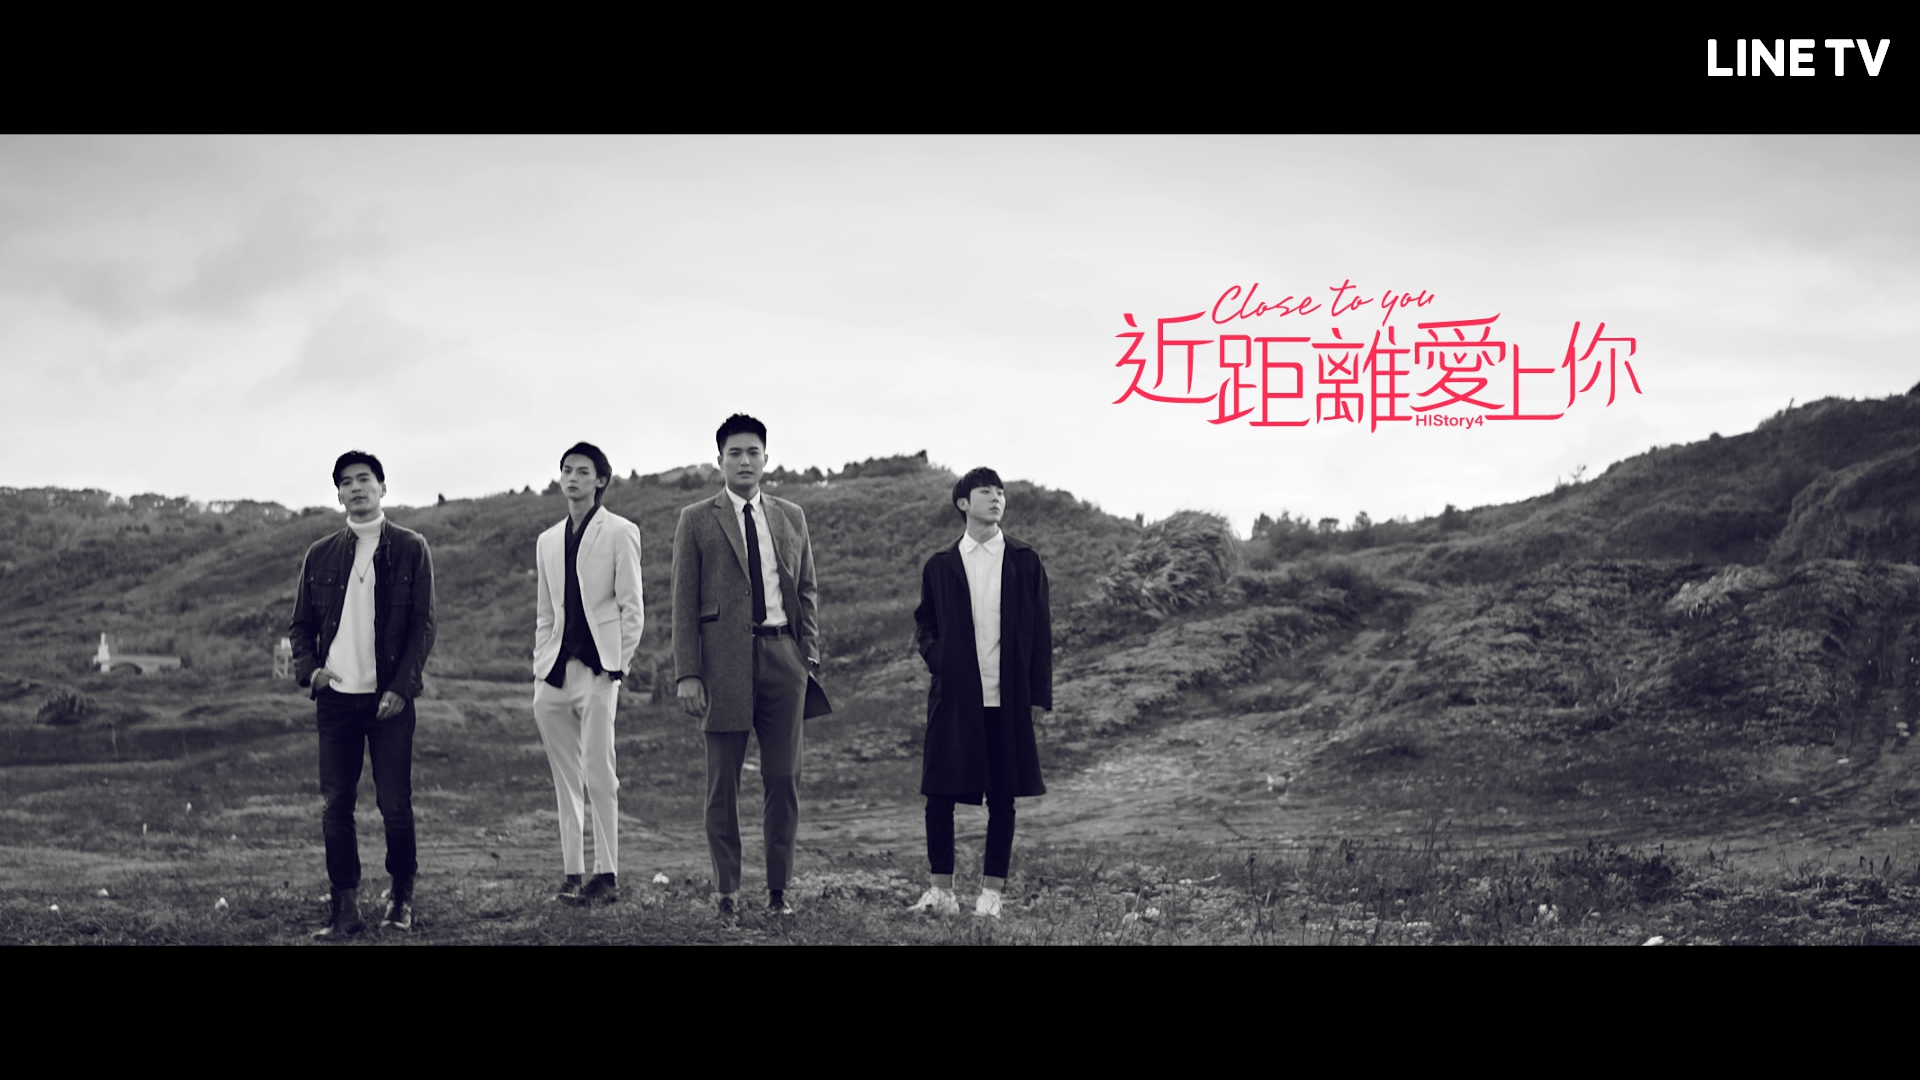 《HIStory4-近距離愛上你(英文名:Close To You)》